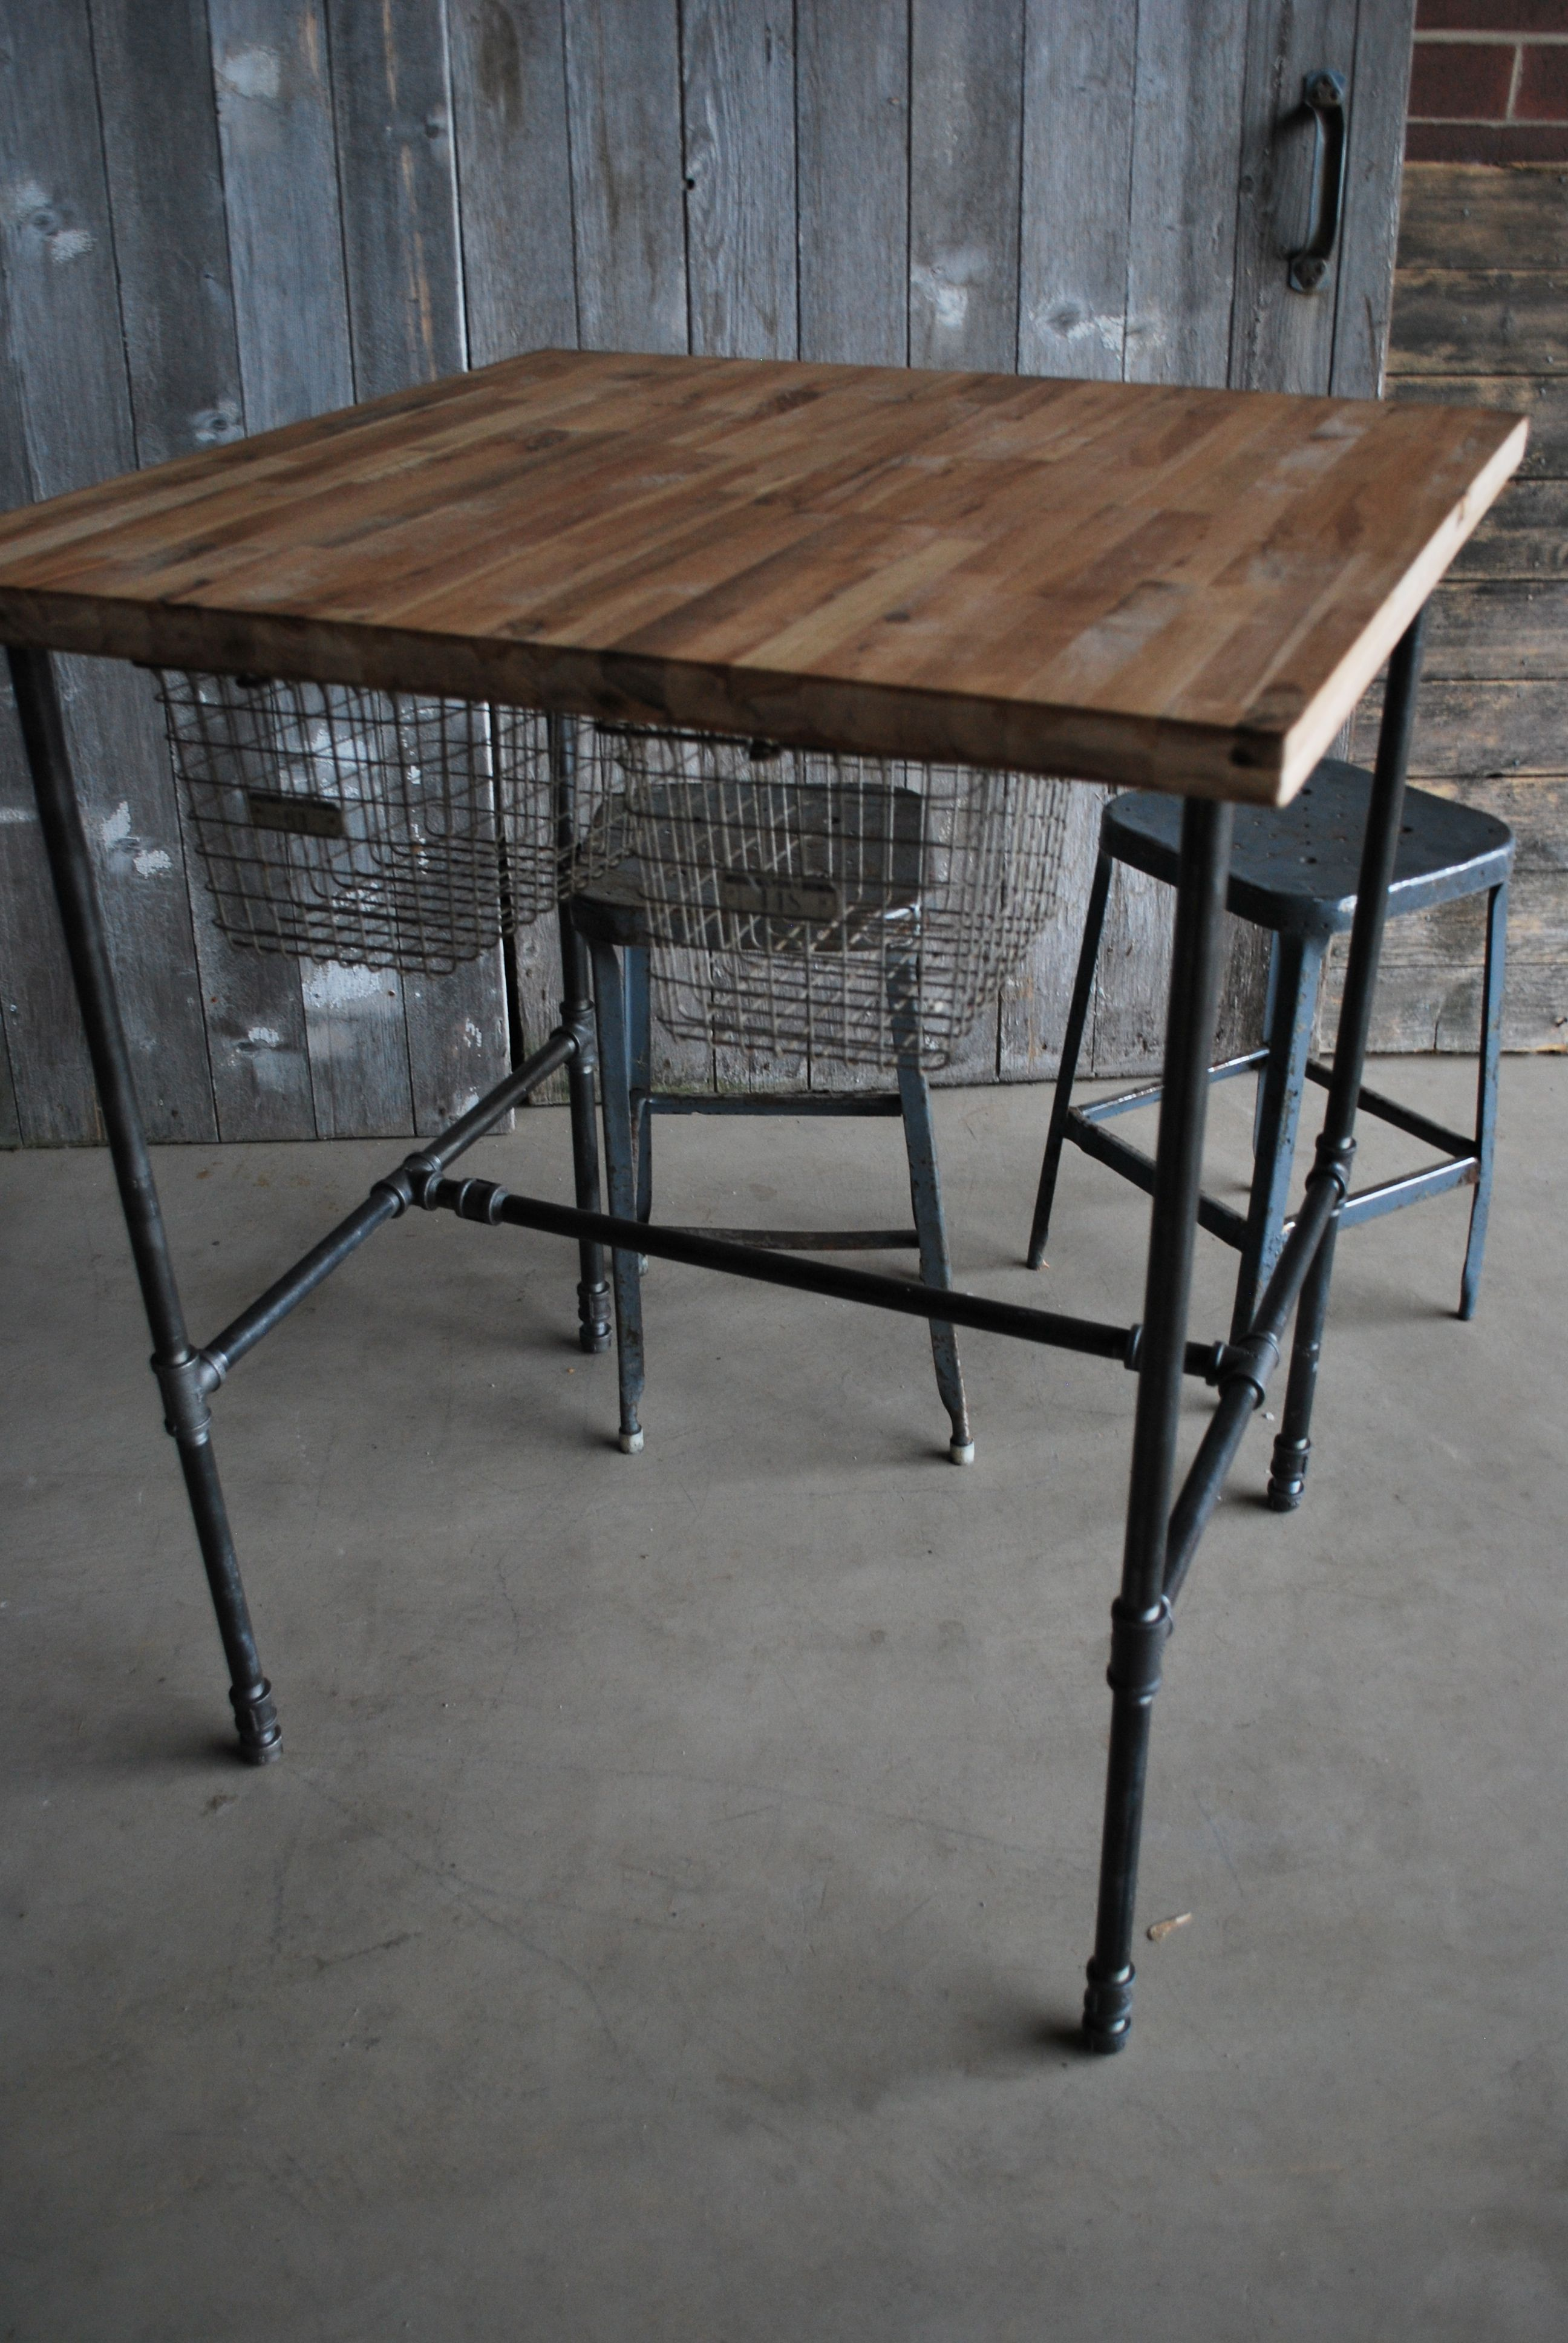 Table made with pipe, wood, complete with sliding basket drawers ...